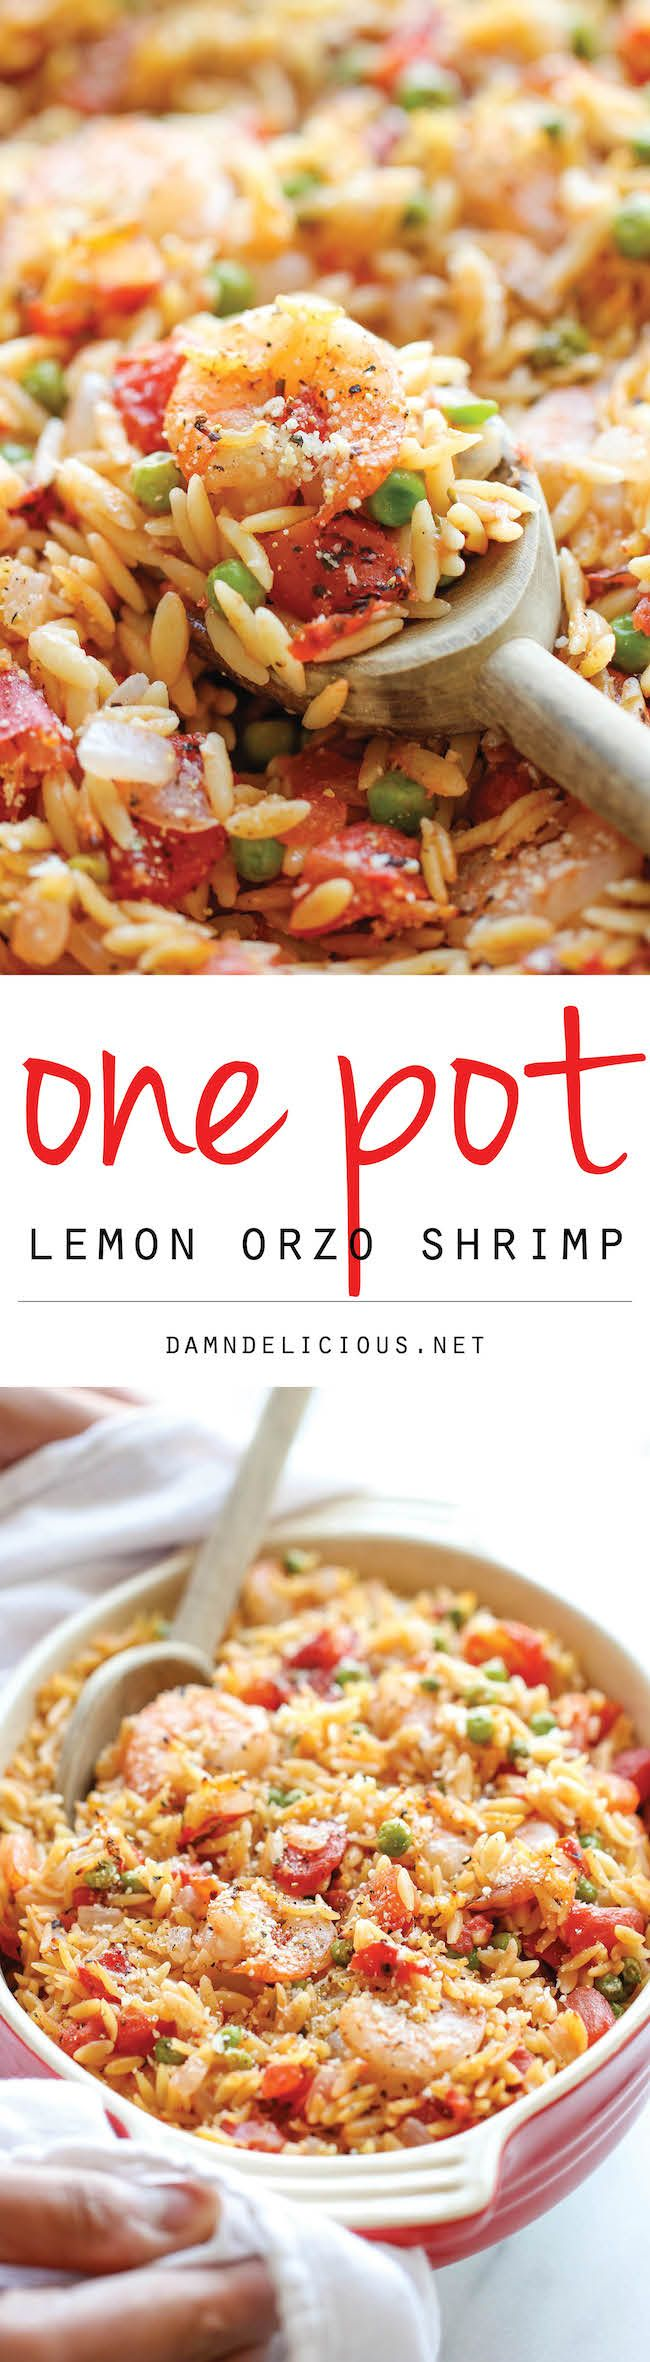 One Pot Lemon Orzo Shrimp